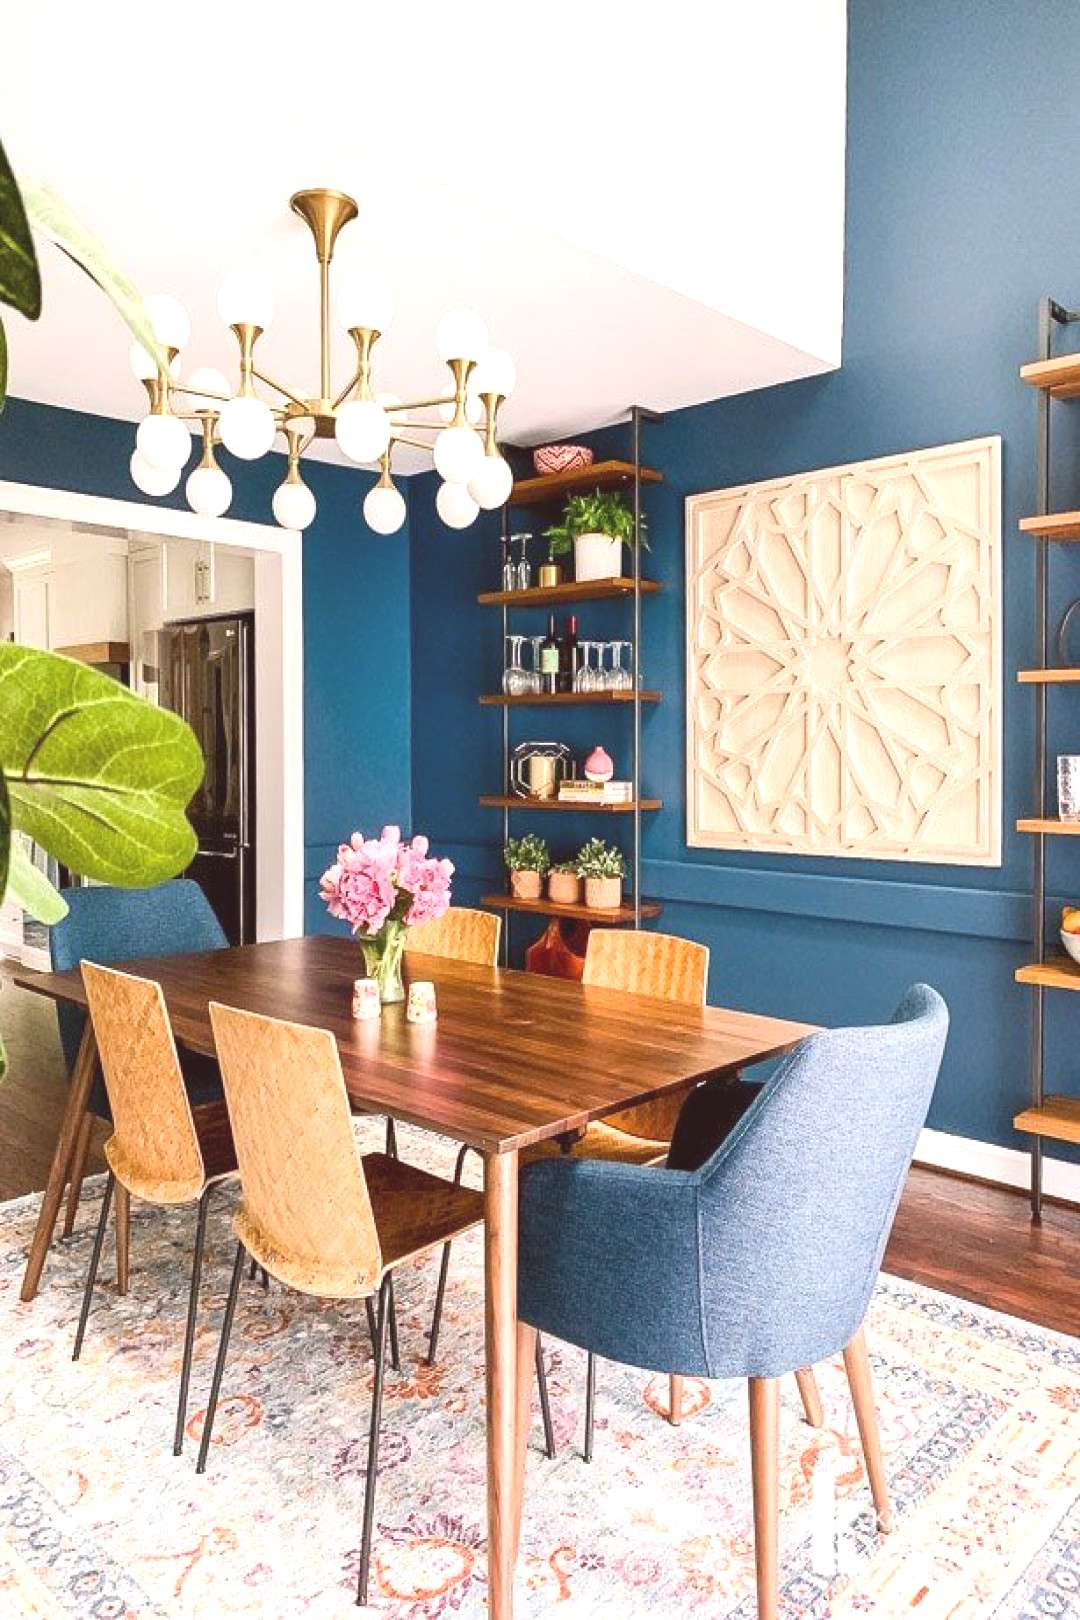 The new mid-century modern furniture for our eclectic, navy blue dining room arrived and its PERFE